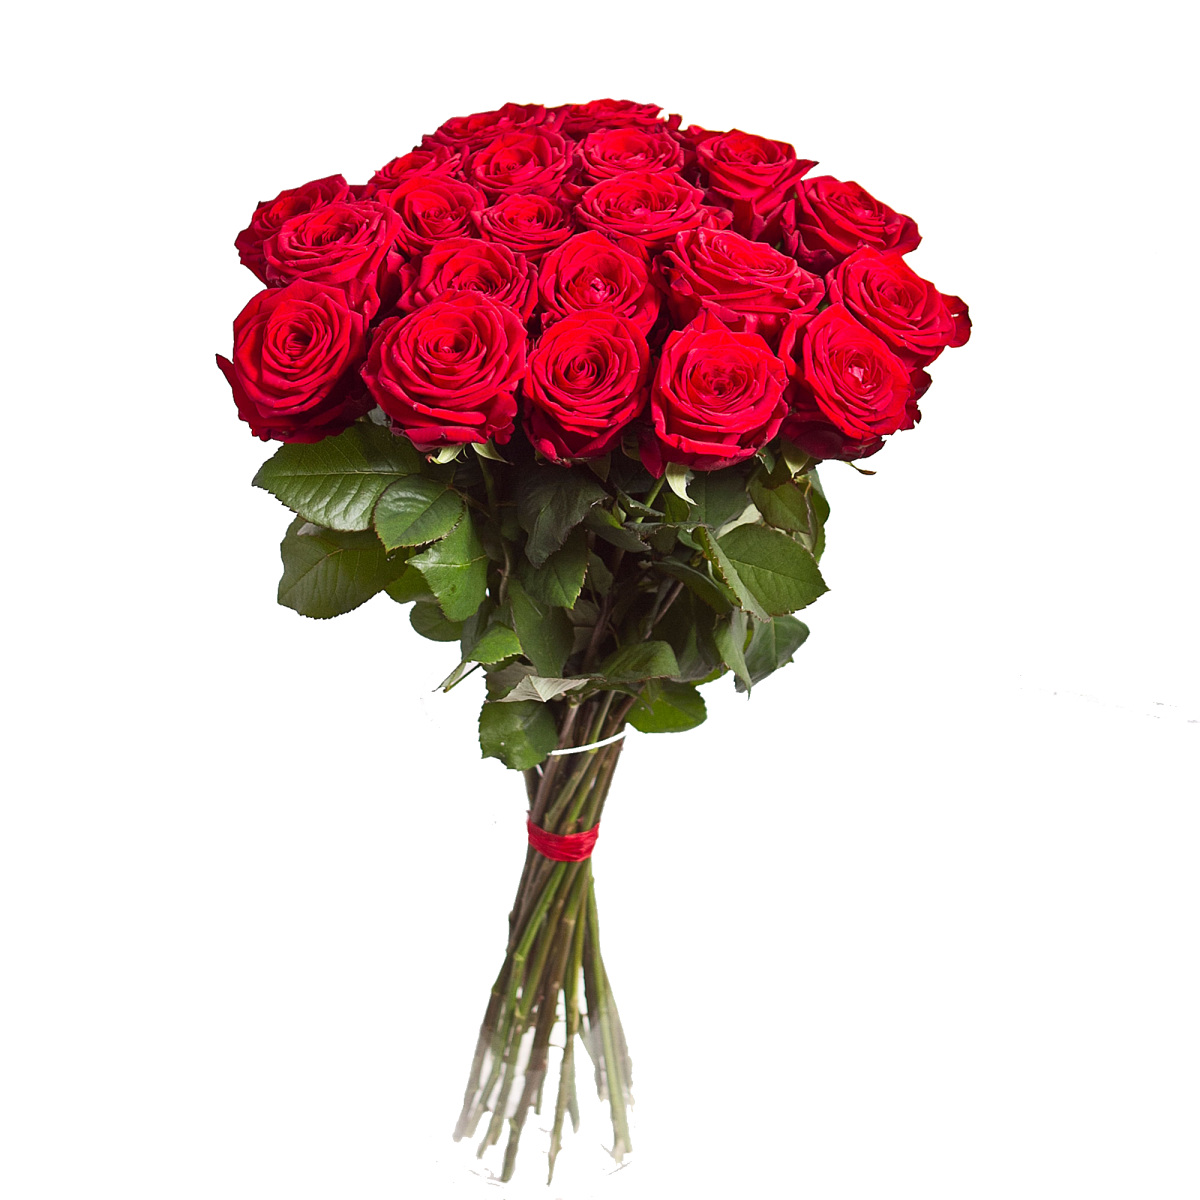 Bouquet Of Flowers PNG Image.